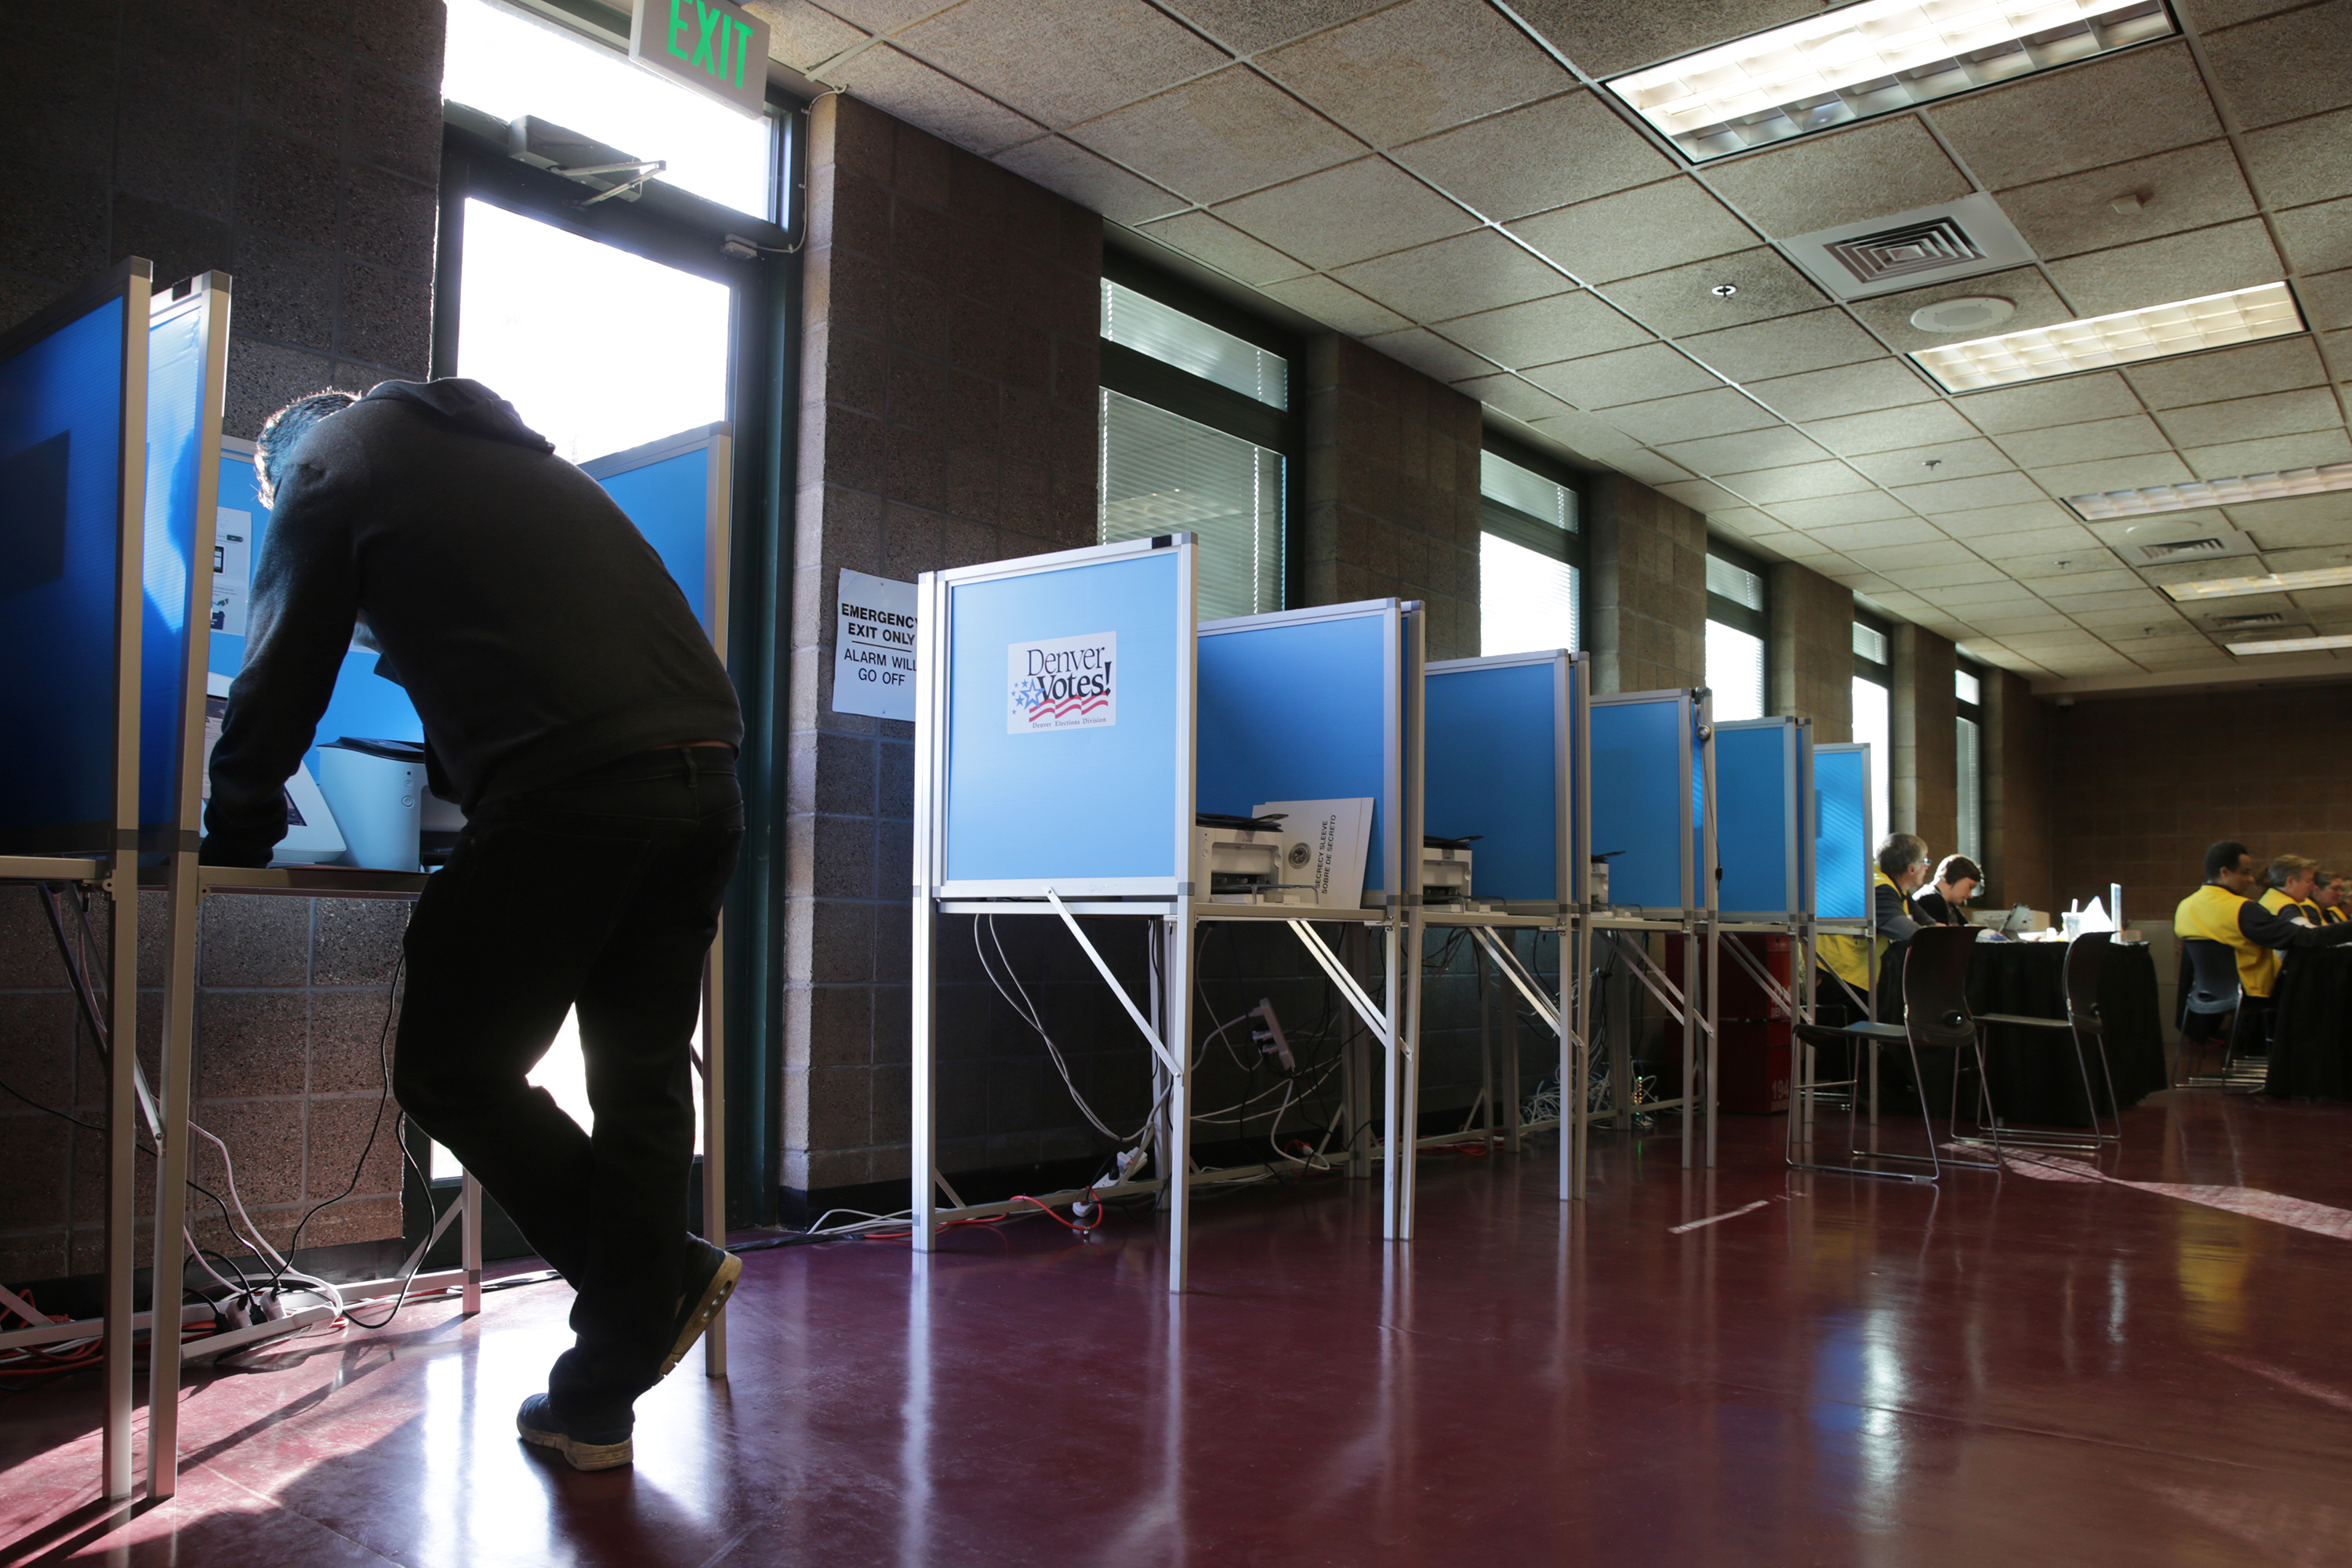 Voting at the Hiawatha David Jr. Rec. Center polling station in Denver's Park Hill neighborhood on Election Day 2016.